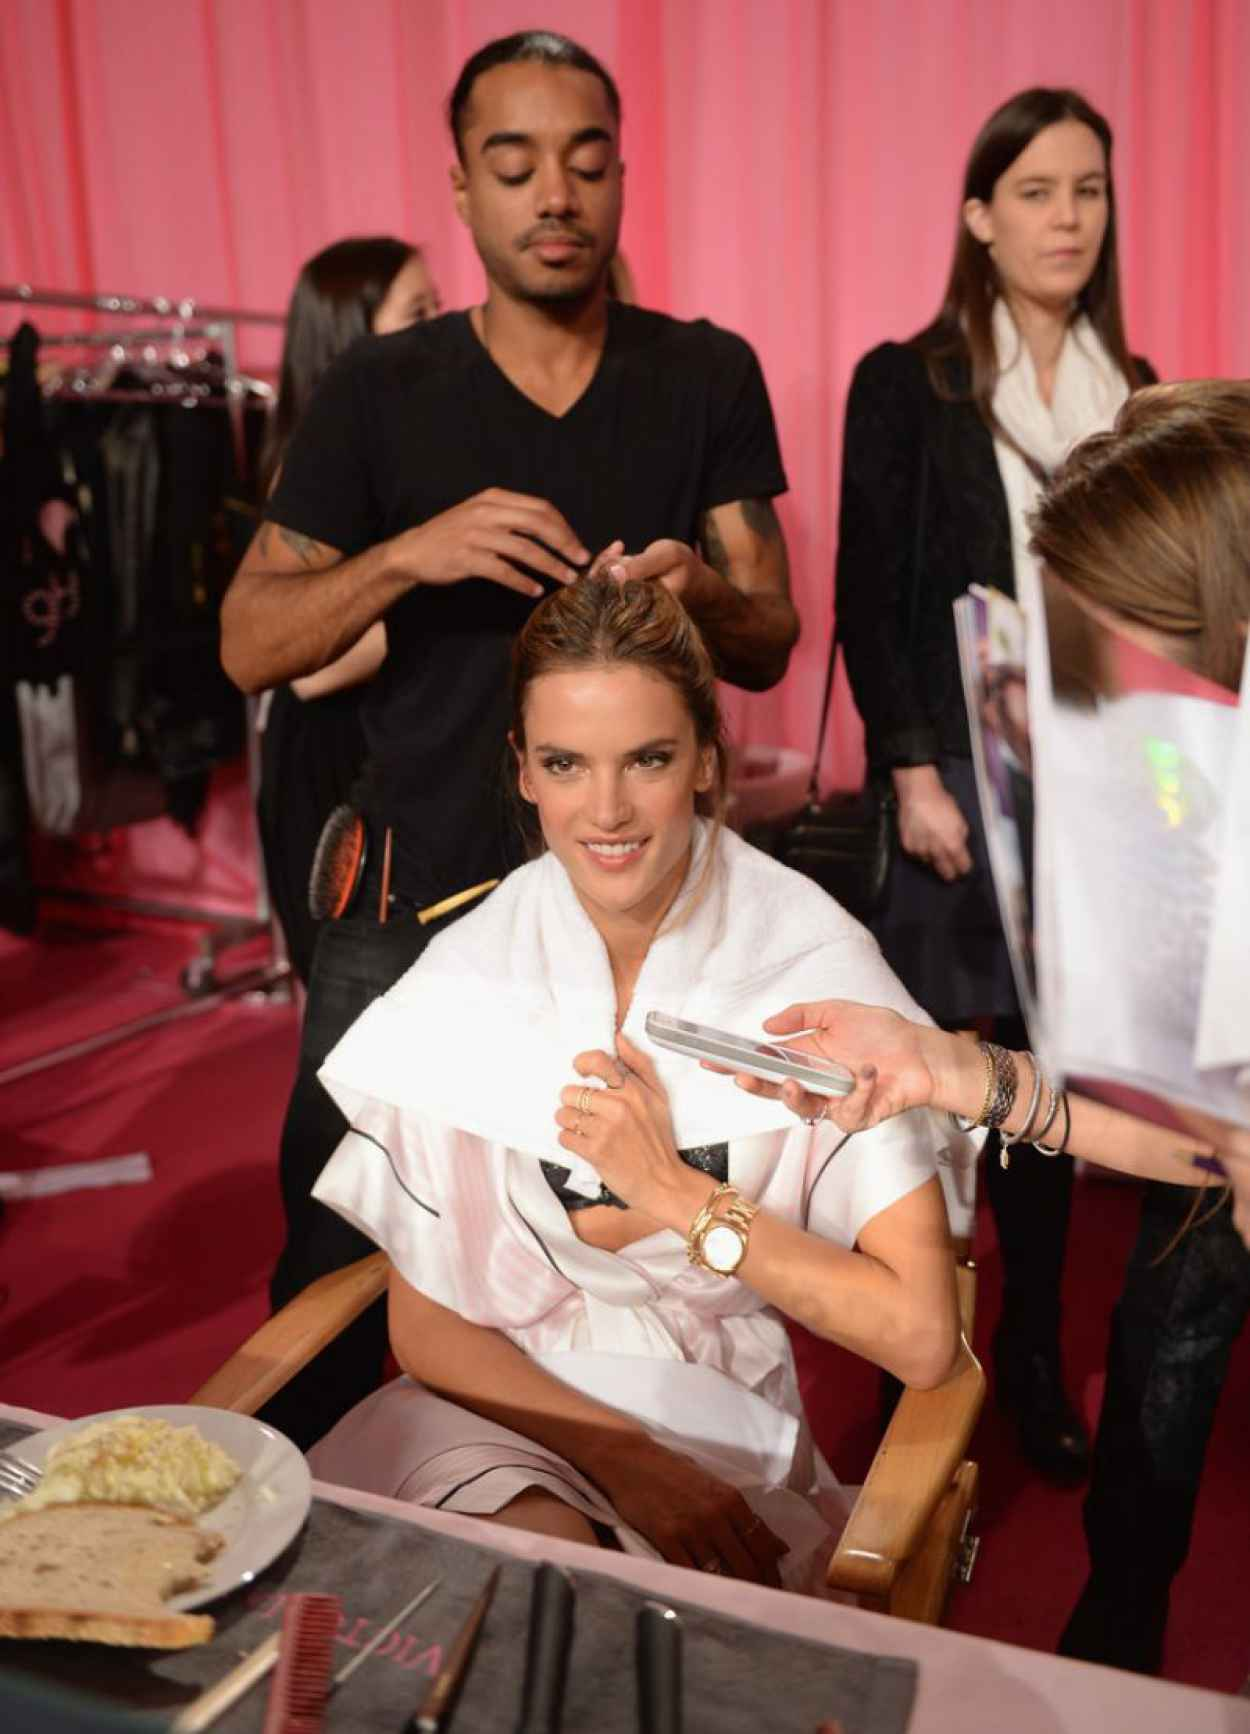 Alessandra Ambrosio Backstage Photos at the 2015 Victorias Secret Fashion Show in New York City-1